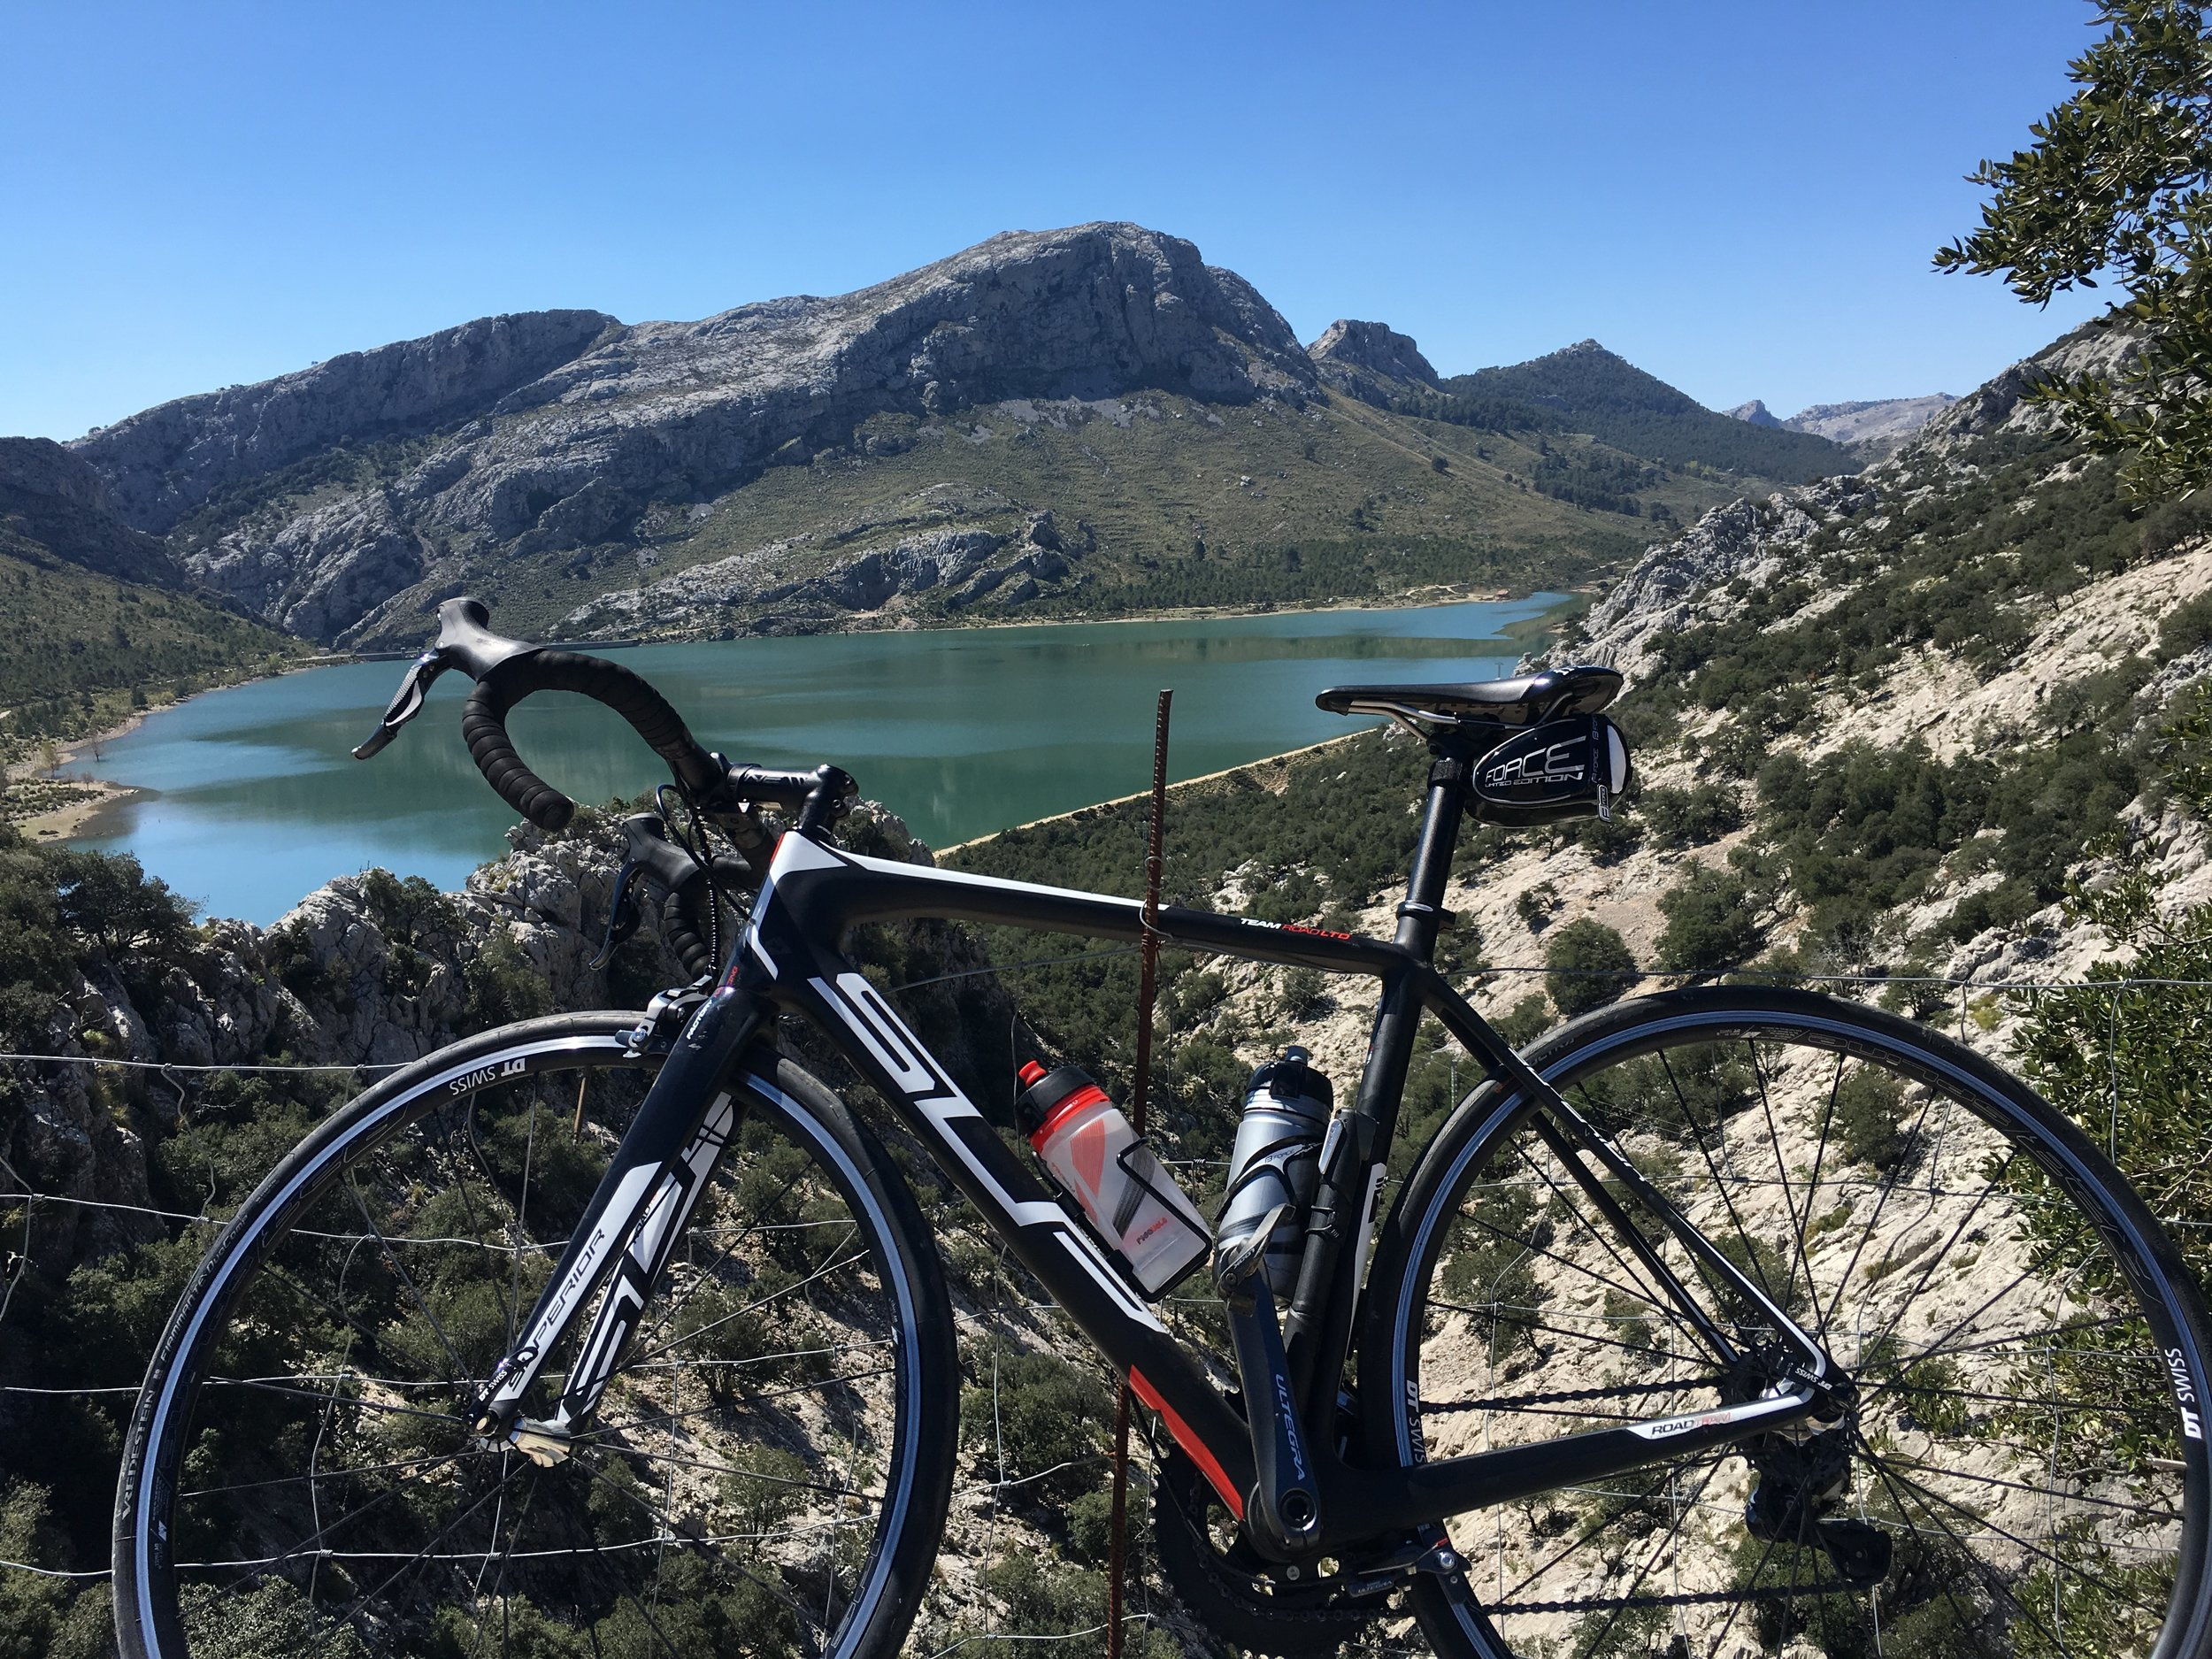 Top quality hire bikes from Marc Reynes in Deia marc_reynes@hotmail.com +34 615453291